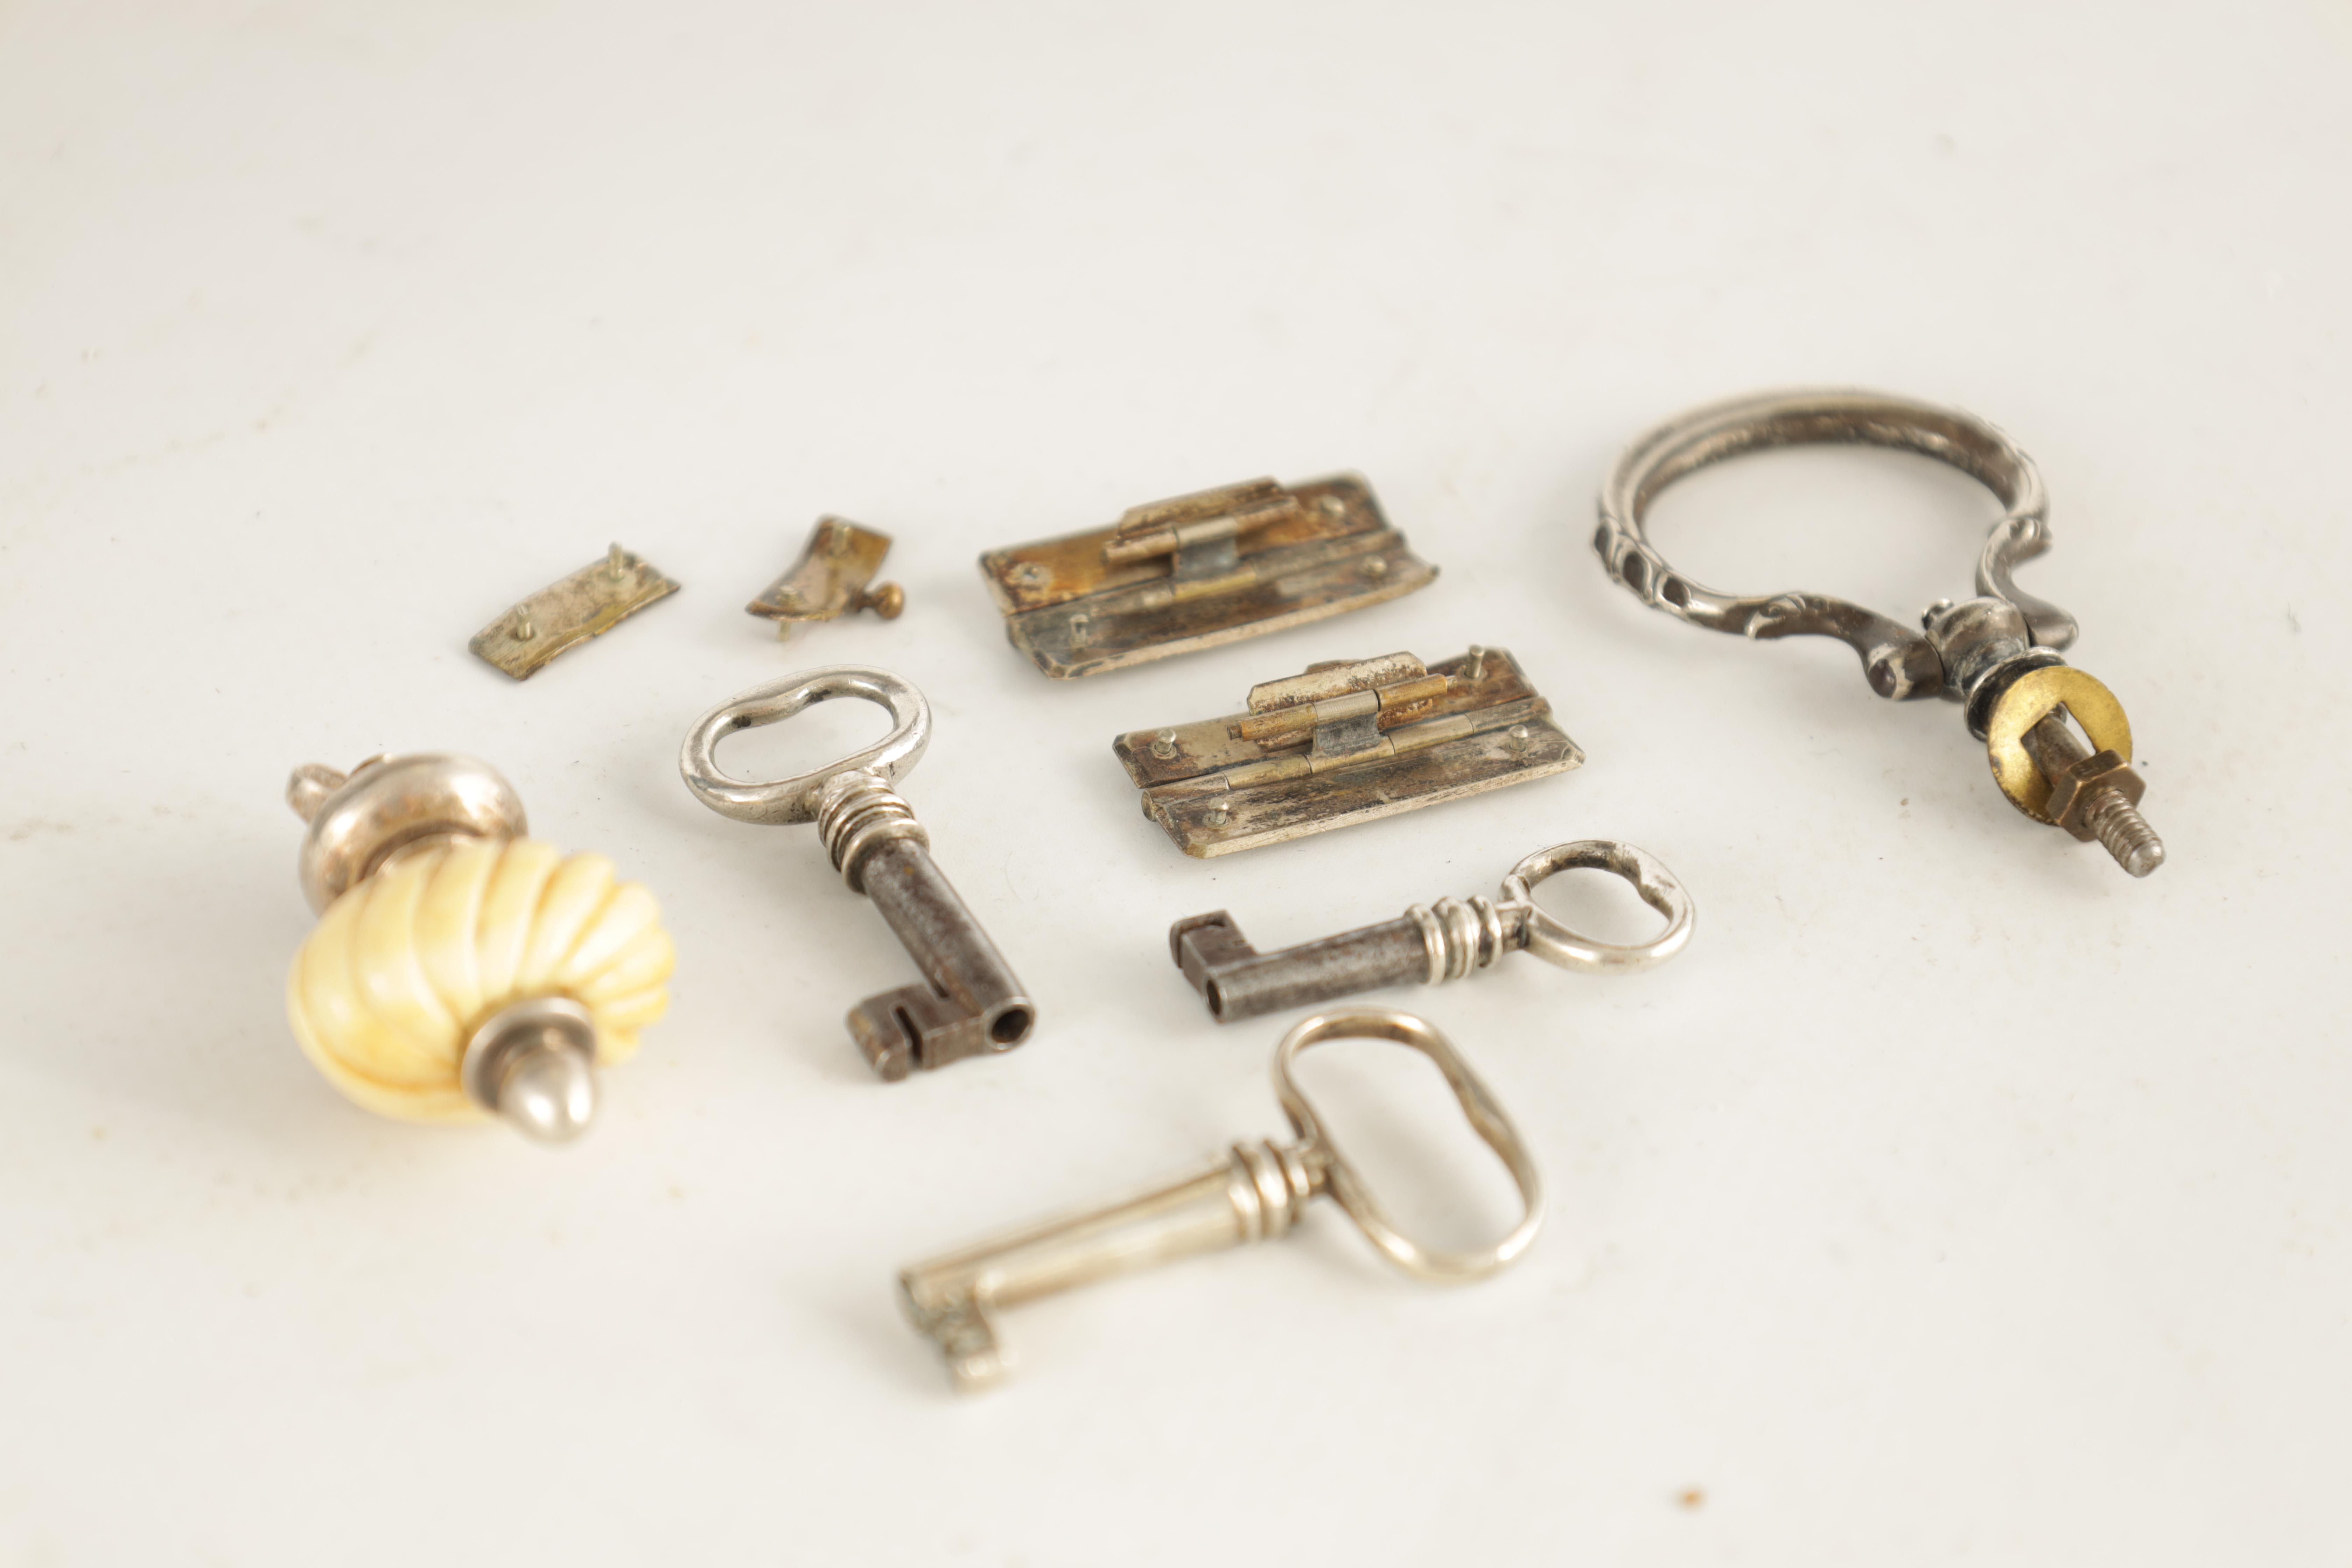 A SELECTION OF SILVER KEYS, FINIALS AND HINGES 7 items in total - Image 2 of 2